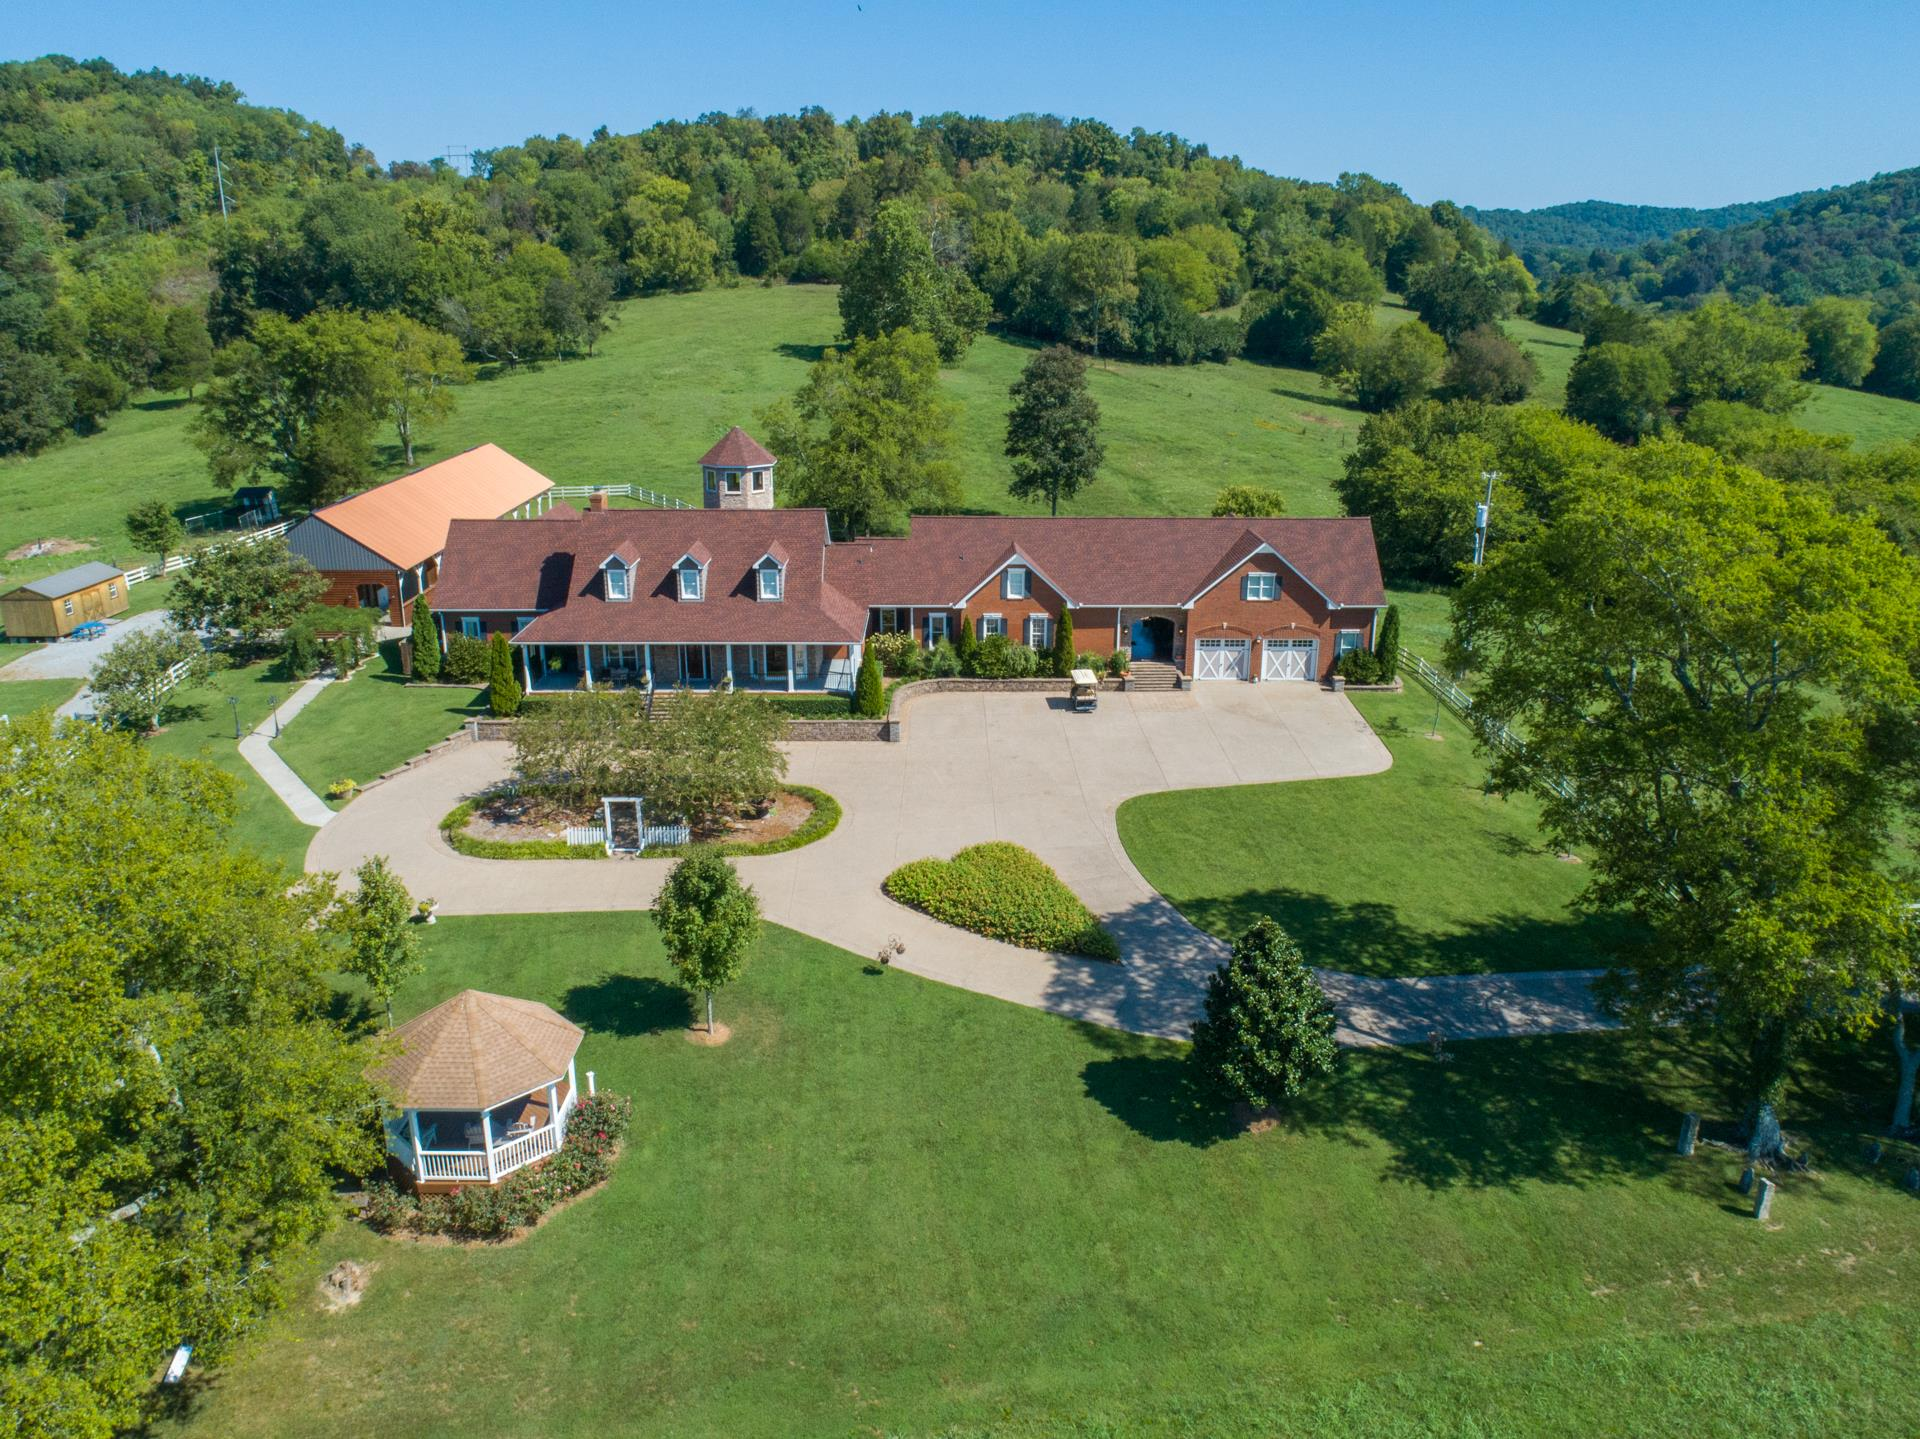 475 Dry Fork Creek Rd, Gallatin, Tennessee